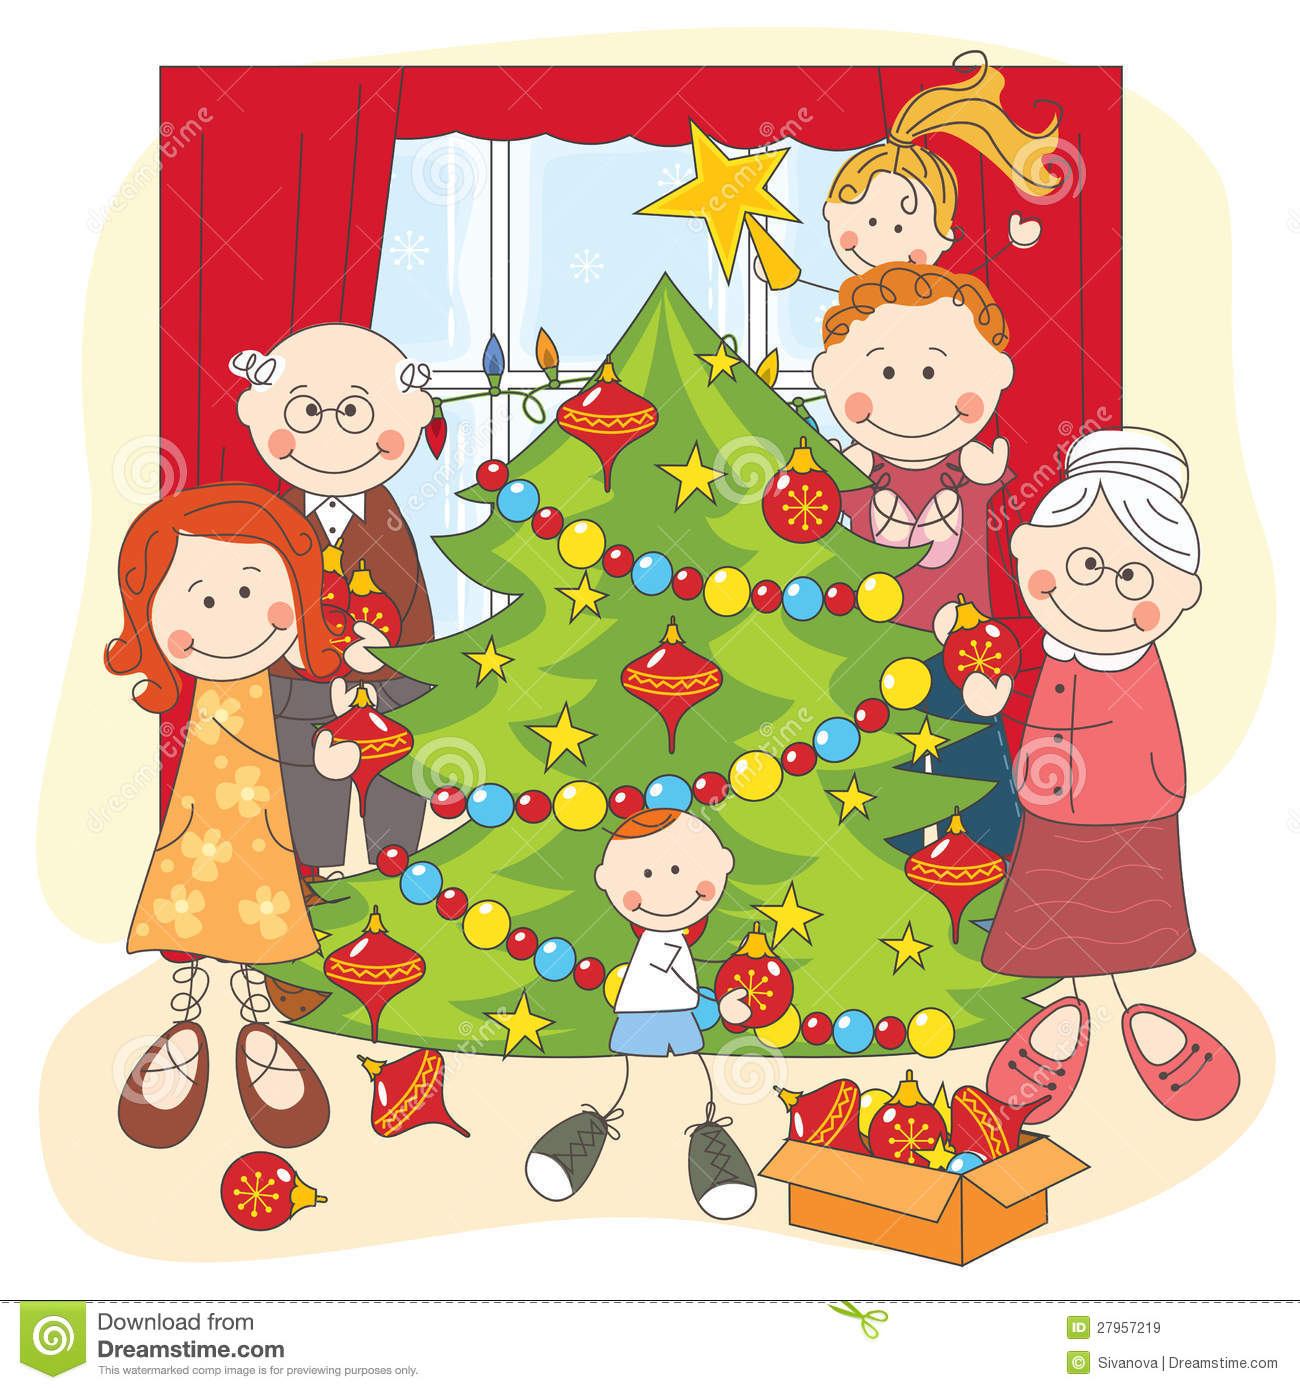 The Big Happy Family Dress Up A Christmas Tree Royalty Free Stock.